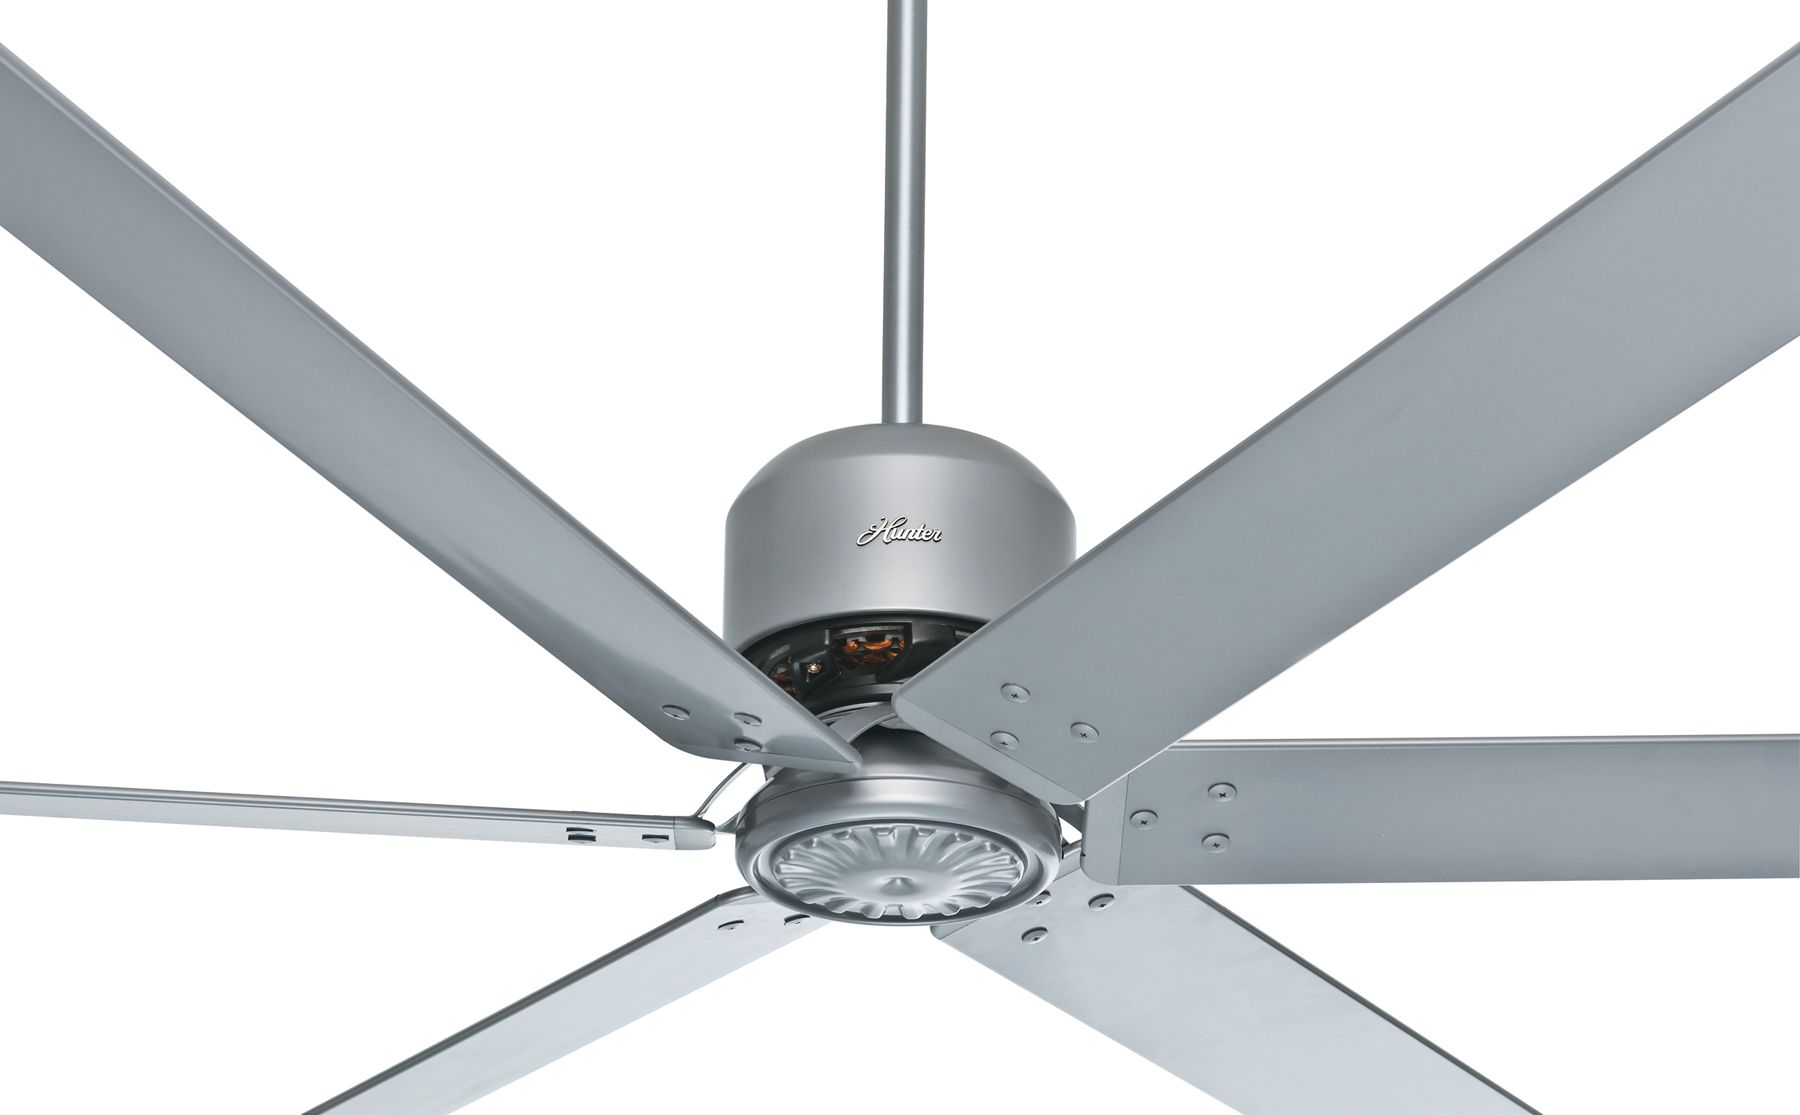 Introducing The 96 Industrial Ceiling Fan It Is Designed